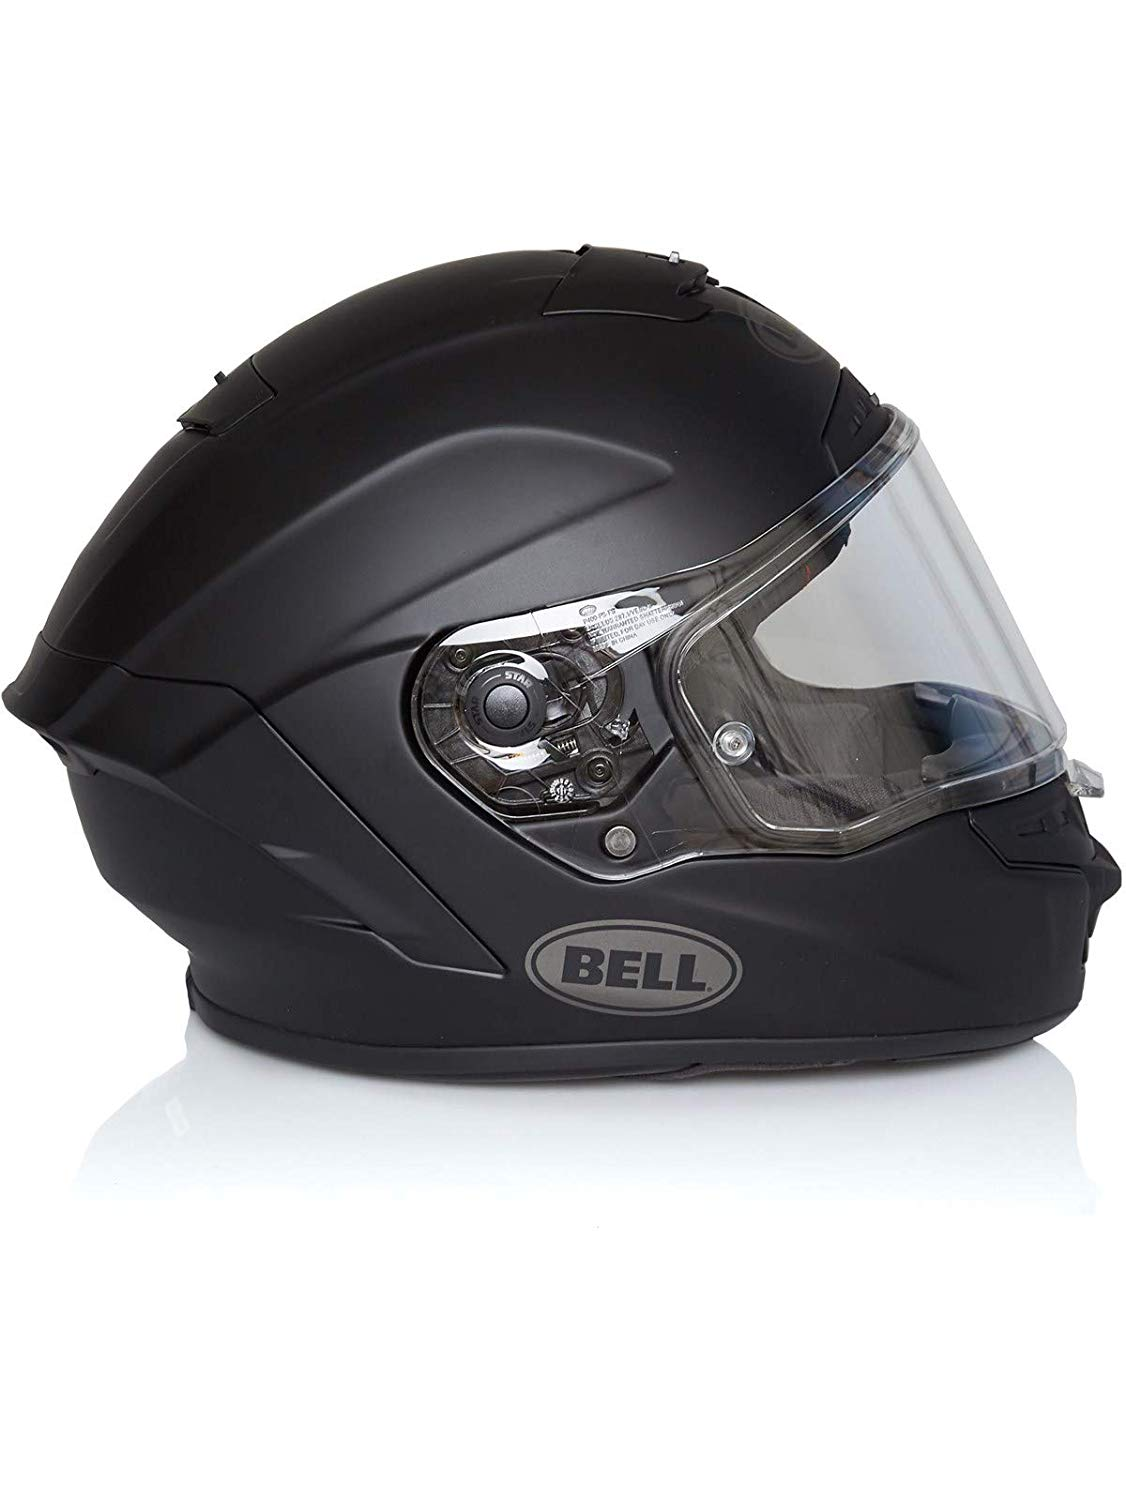 Lot 18 - Bell Helmets Star Solid Mips, Mat Black M, RRP £314.99